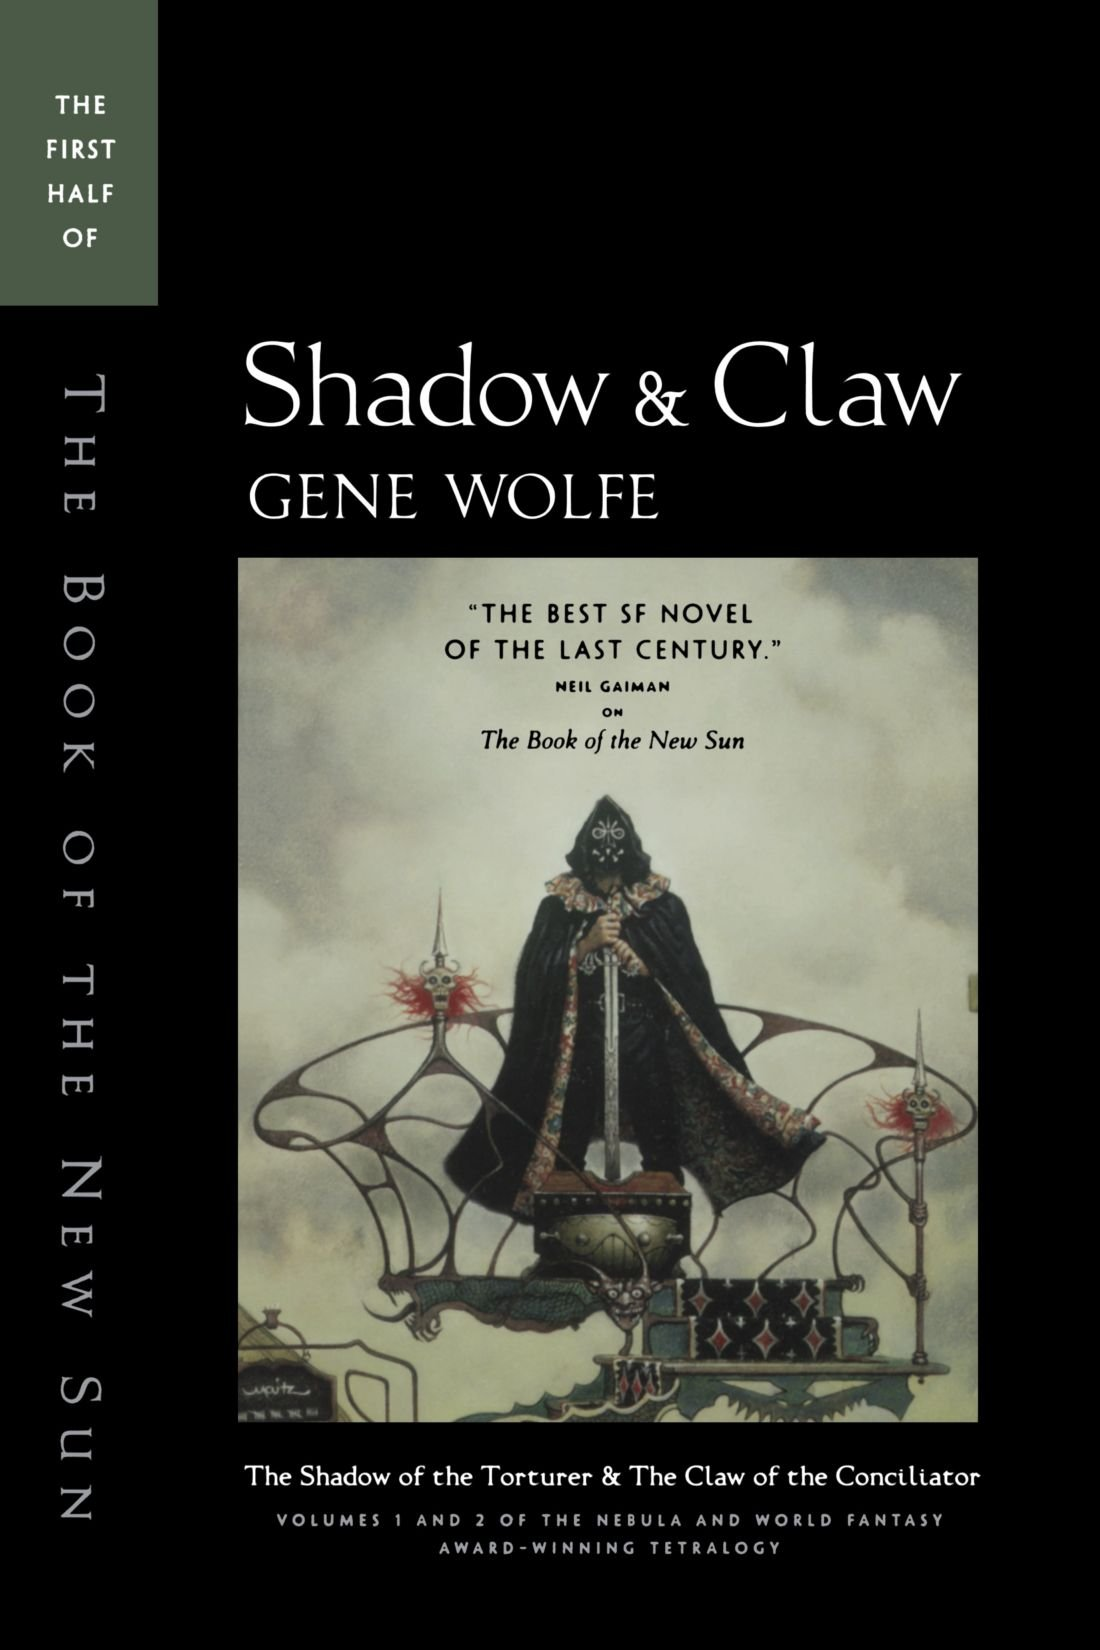 Image OfShadow & Claw: The First Half Of 'The Book Of The New Sun'